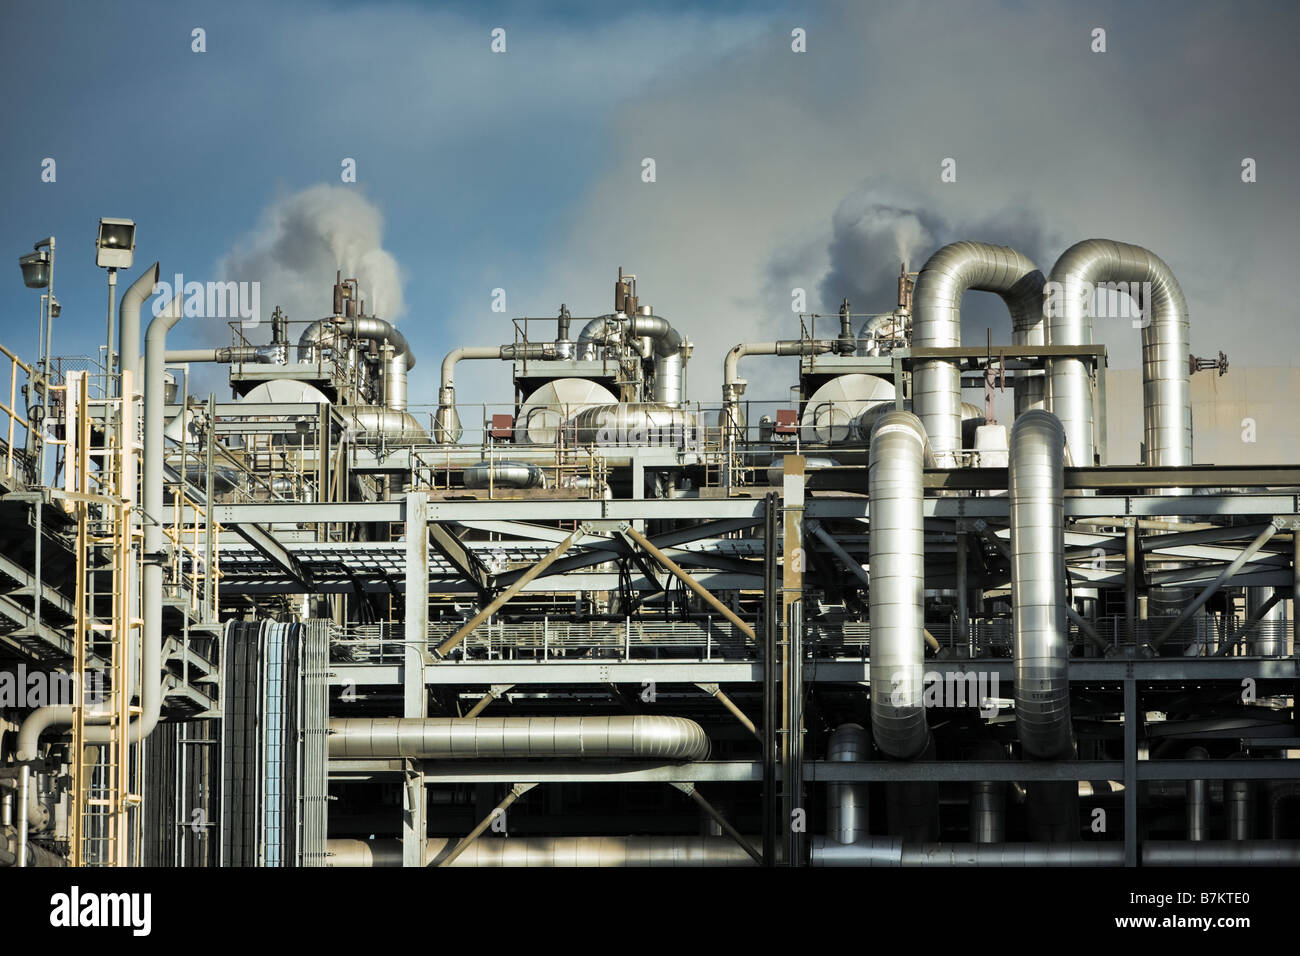 Maze of steel pipes and chimneys inside the facility at a modern gas fired power station plant, UK Stock Photo